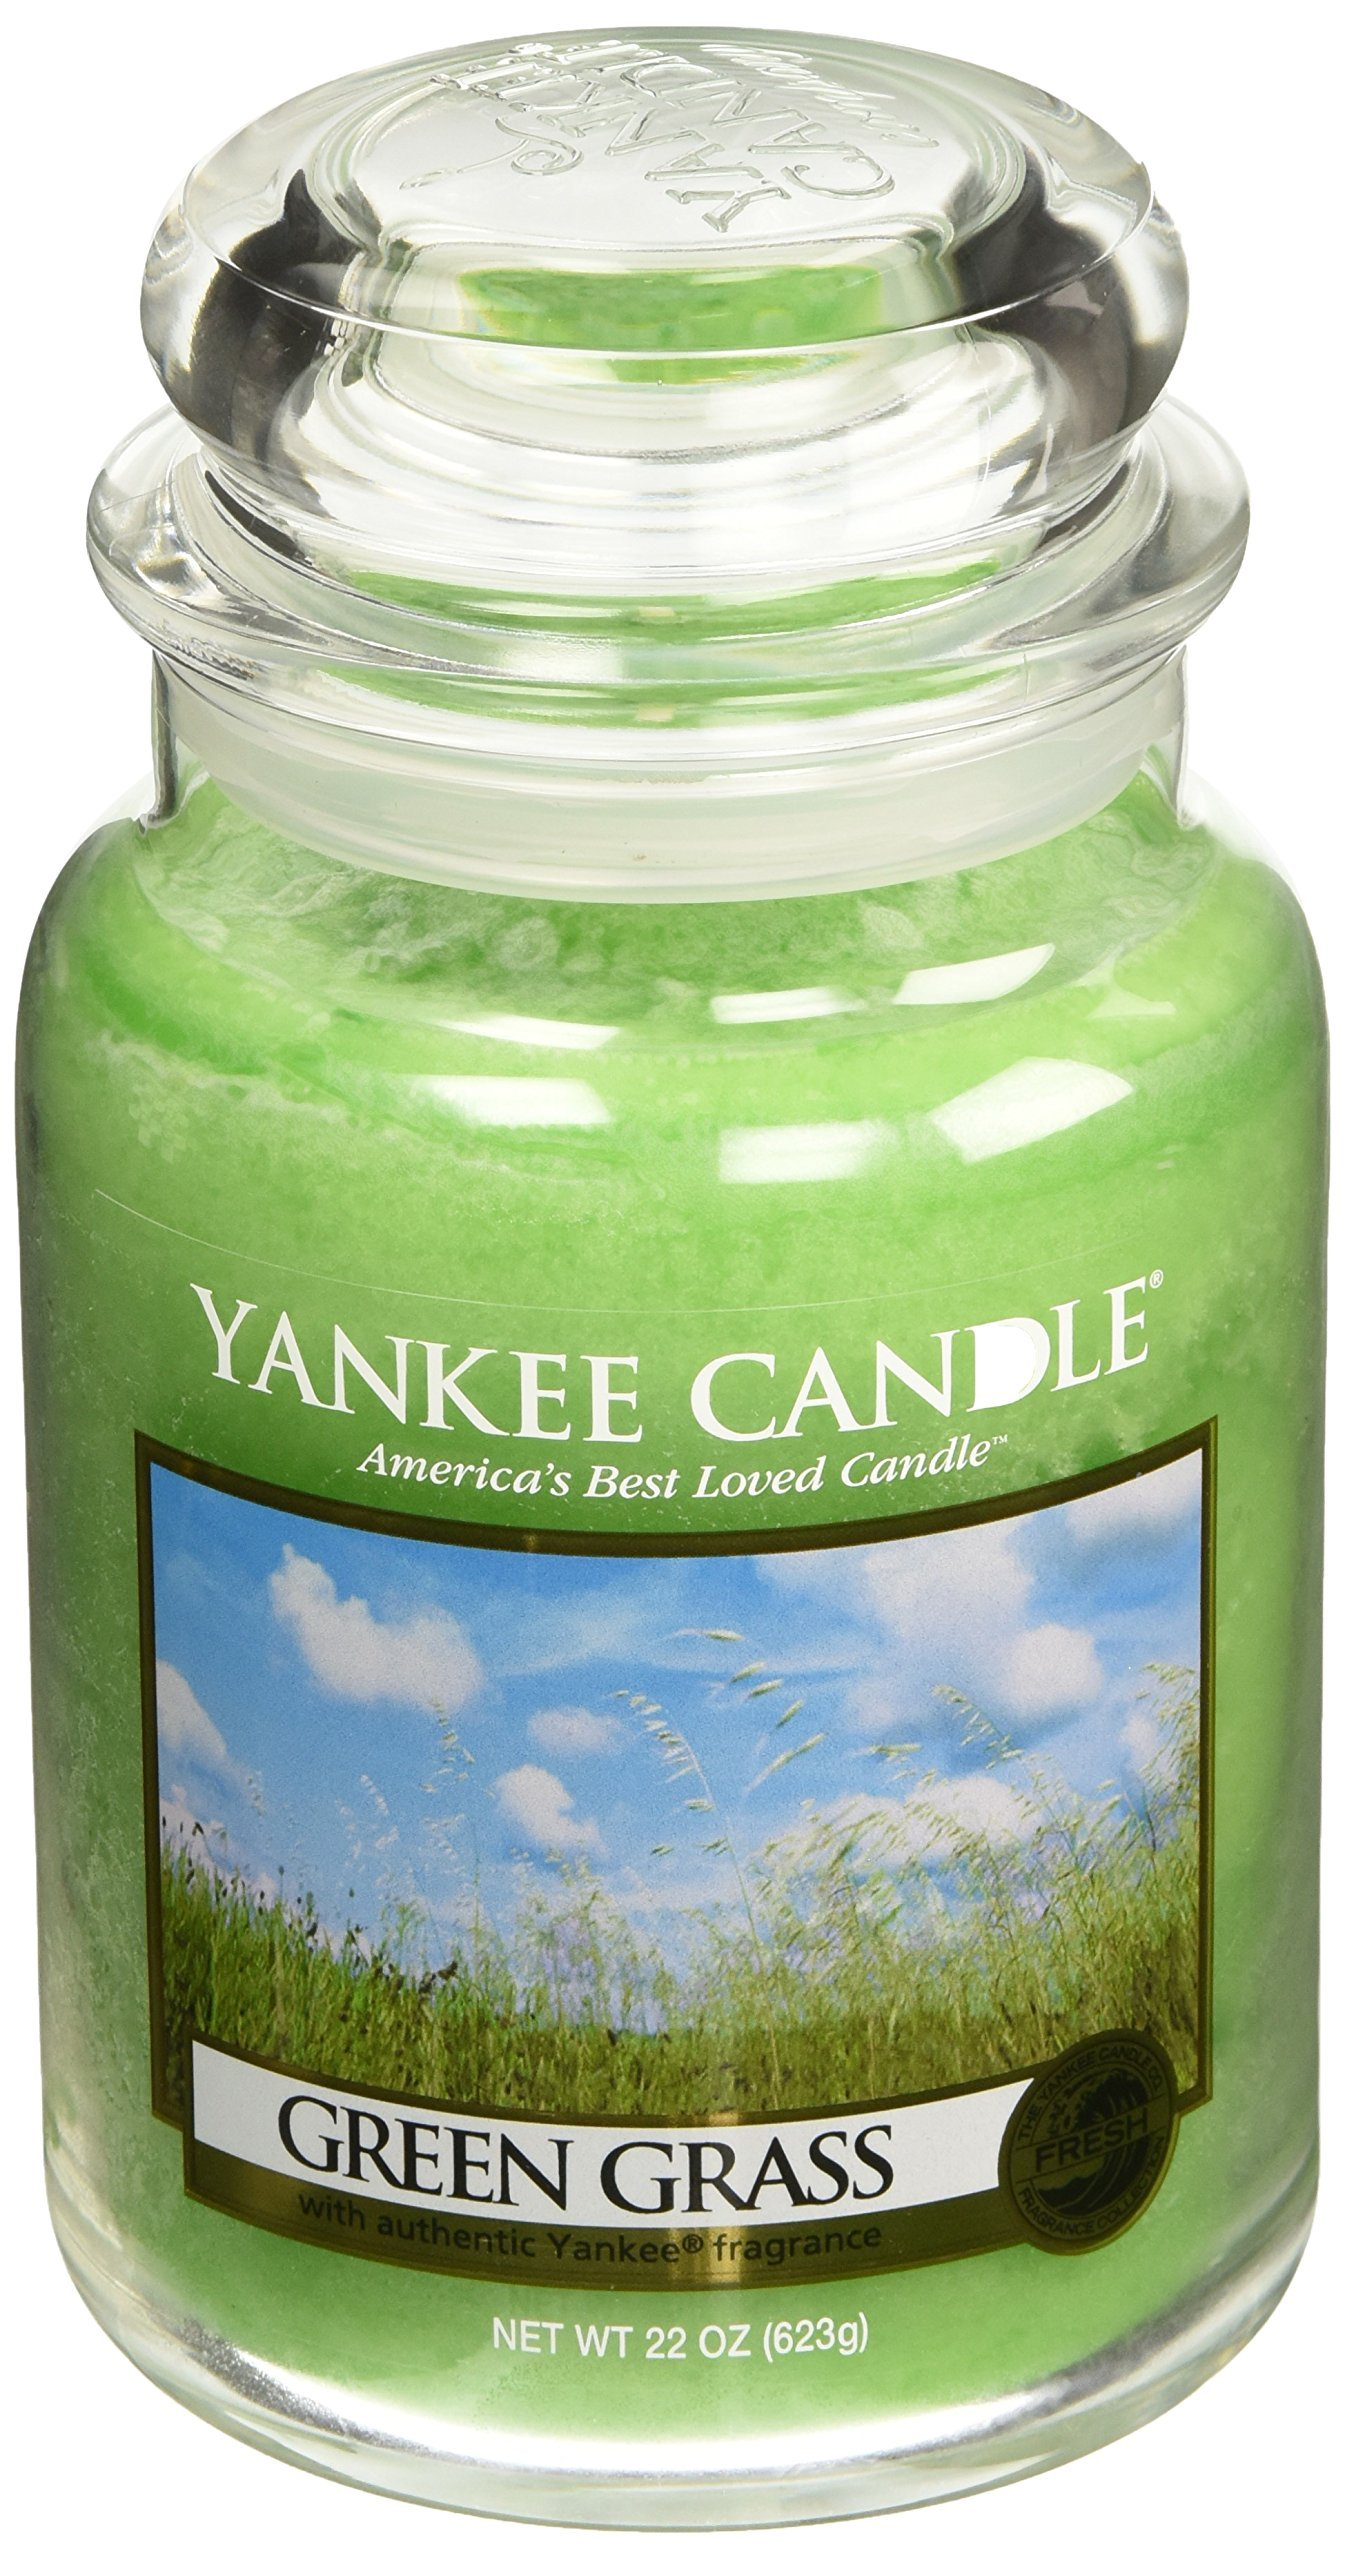 Yankee Candle Company Green Grass Large Jar Candle